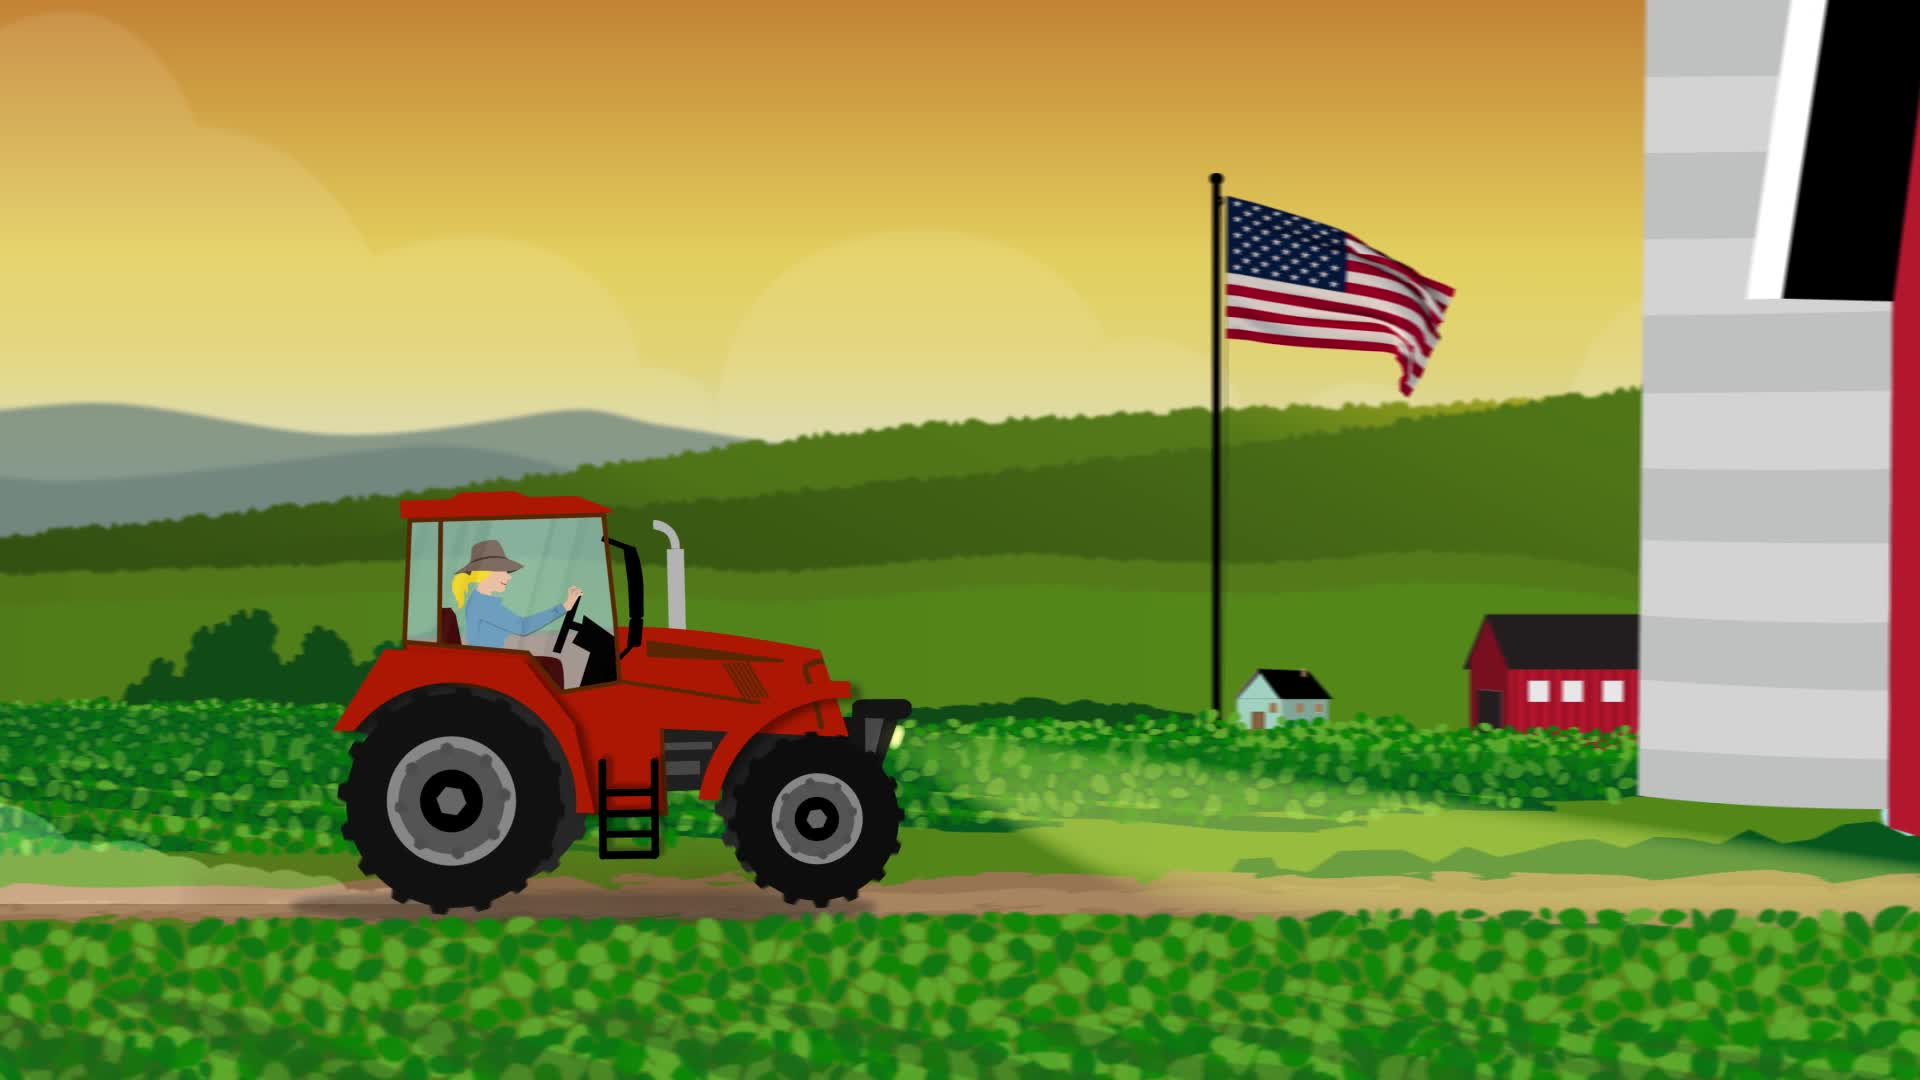 Support local farmers by purchasing vegetable oil made from U.S.-grown soybeans.